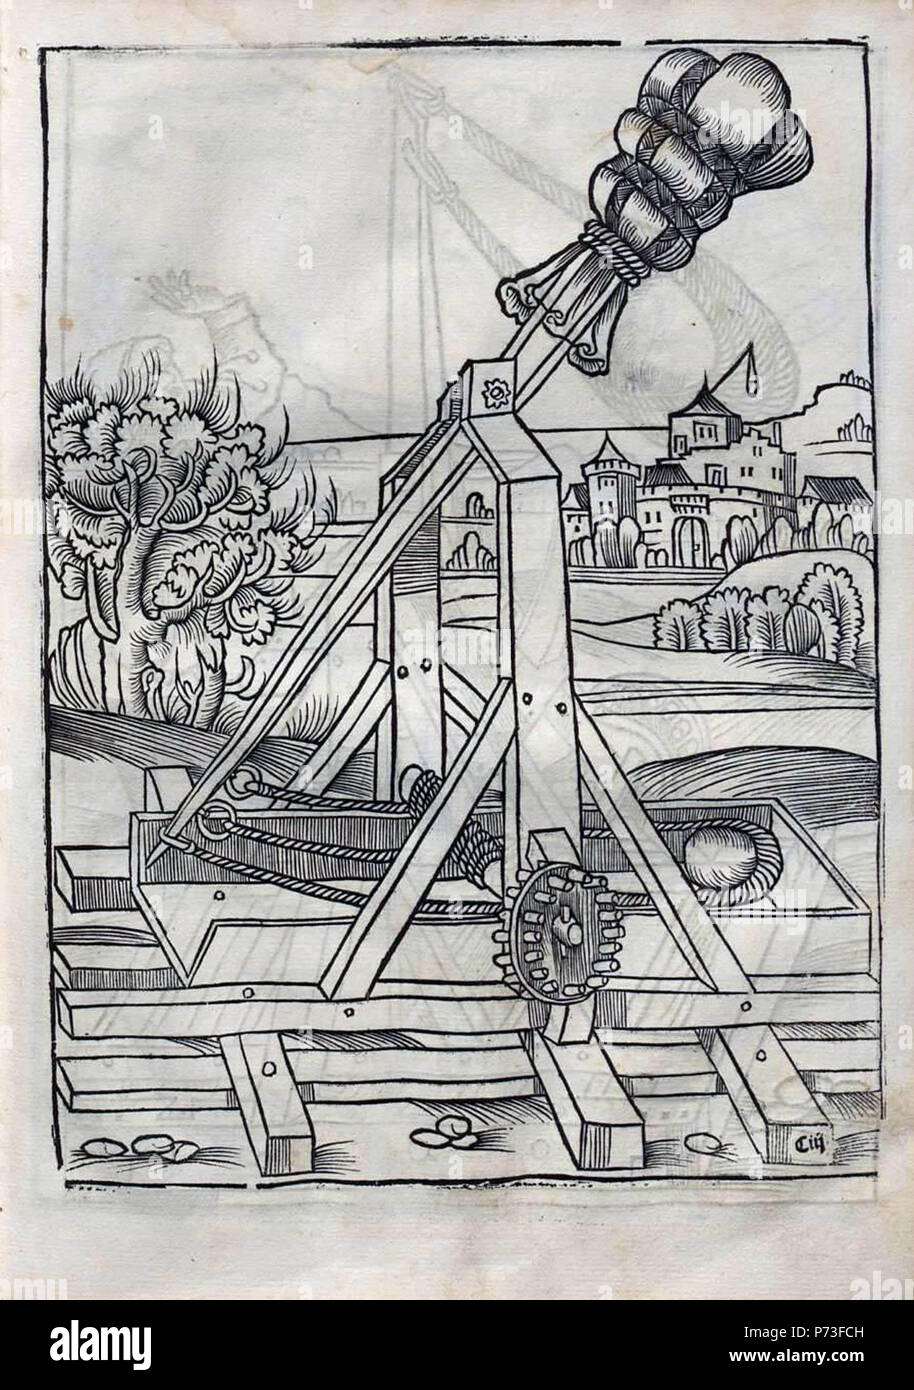 hight resolution of 16th century depiction of a counterweight trebuchet